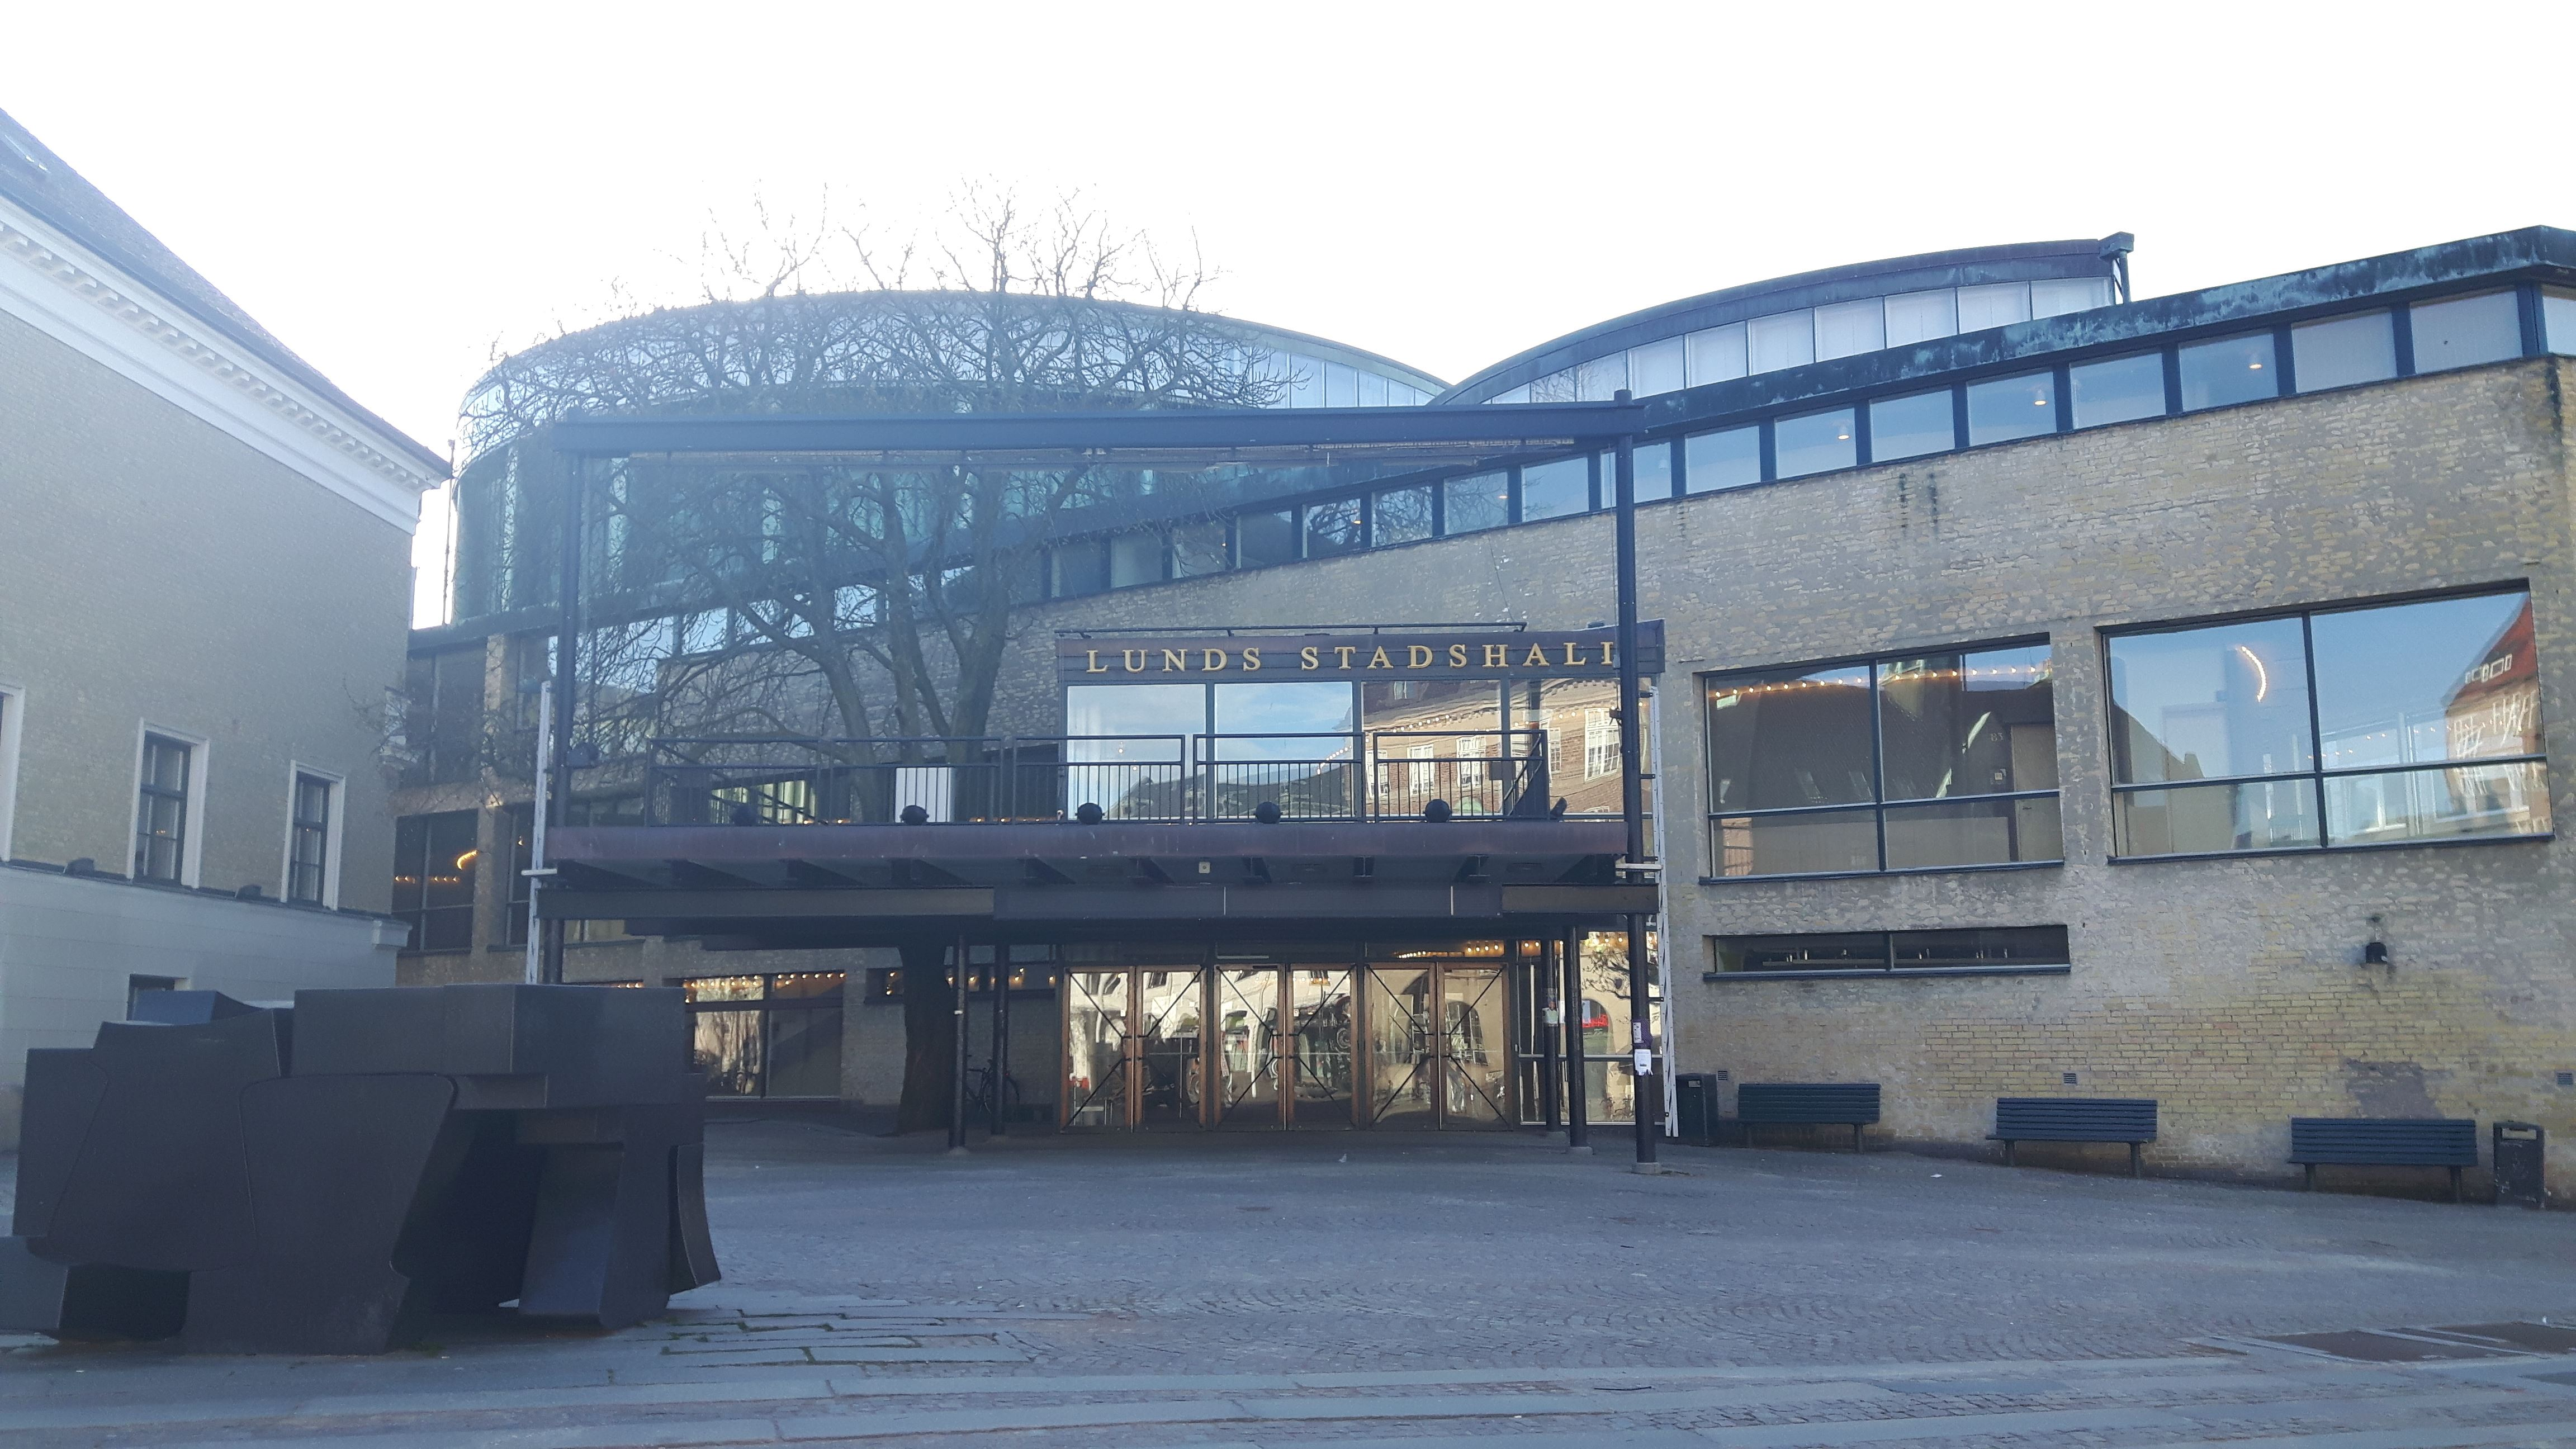 Lunds stadshall